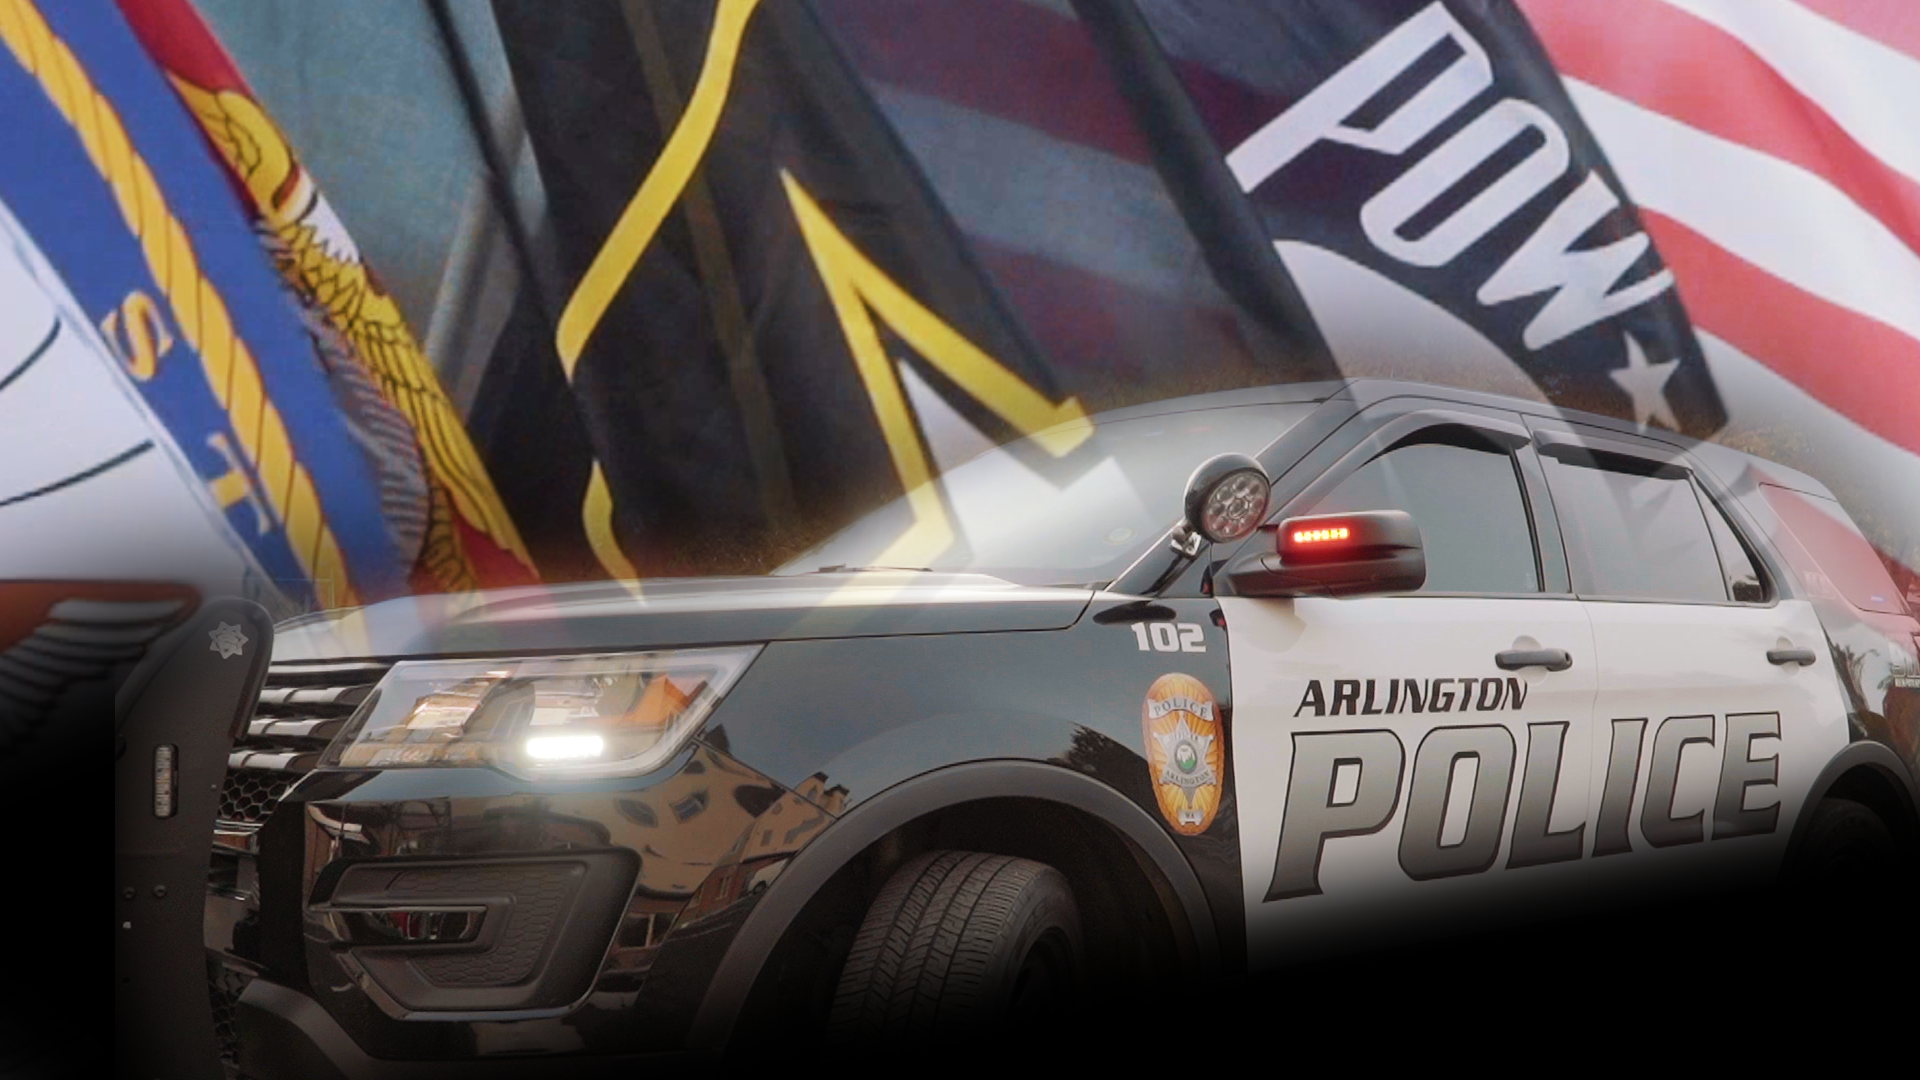 Flags of the branches of the US armed services with an Arlington black and white patrol vehicle